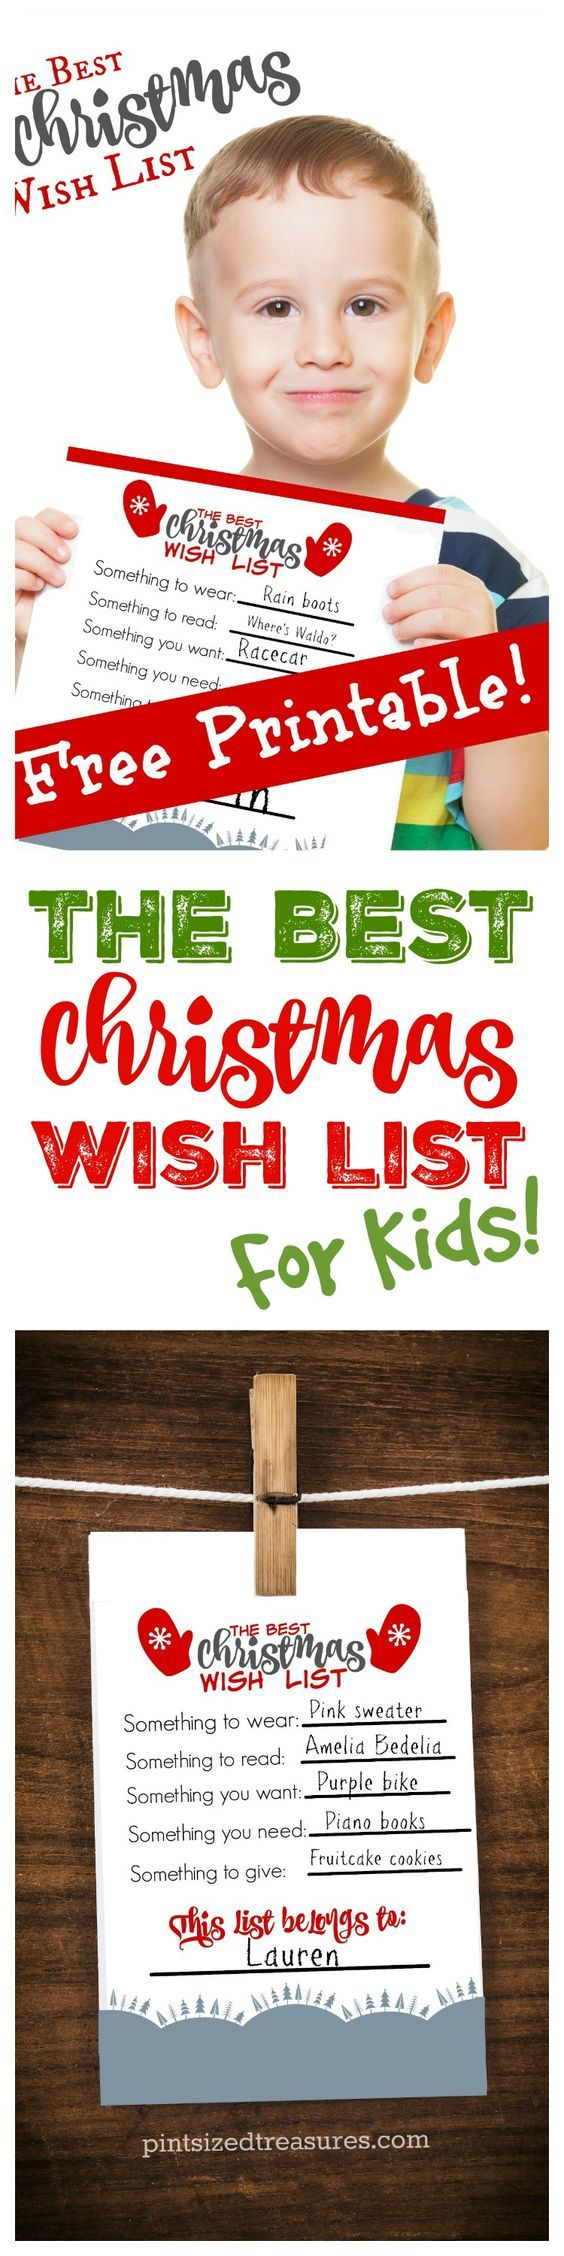 Attention Parents! Your kids NEED this Christmas wish list for the holidays! It's free, printable and promotes thoughtfulness and GIVING! @alicanwrite